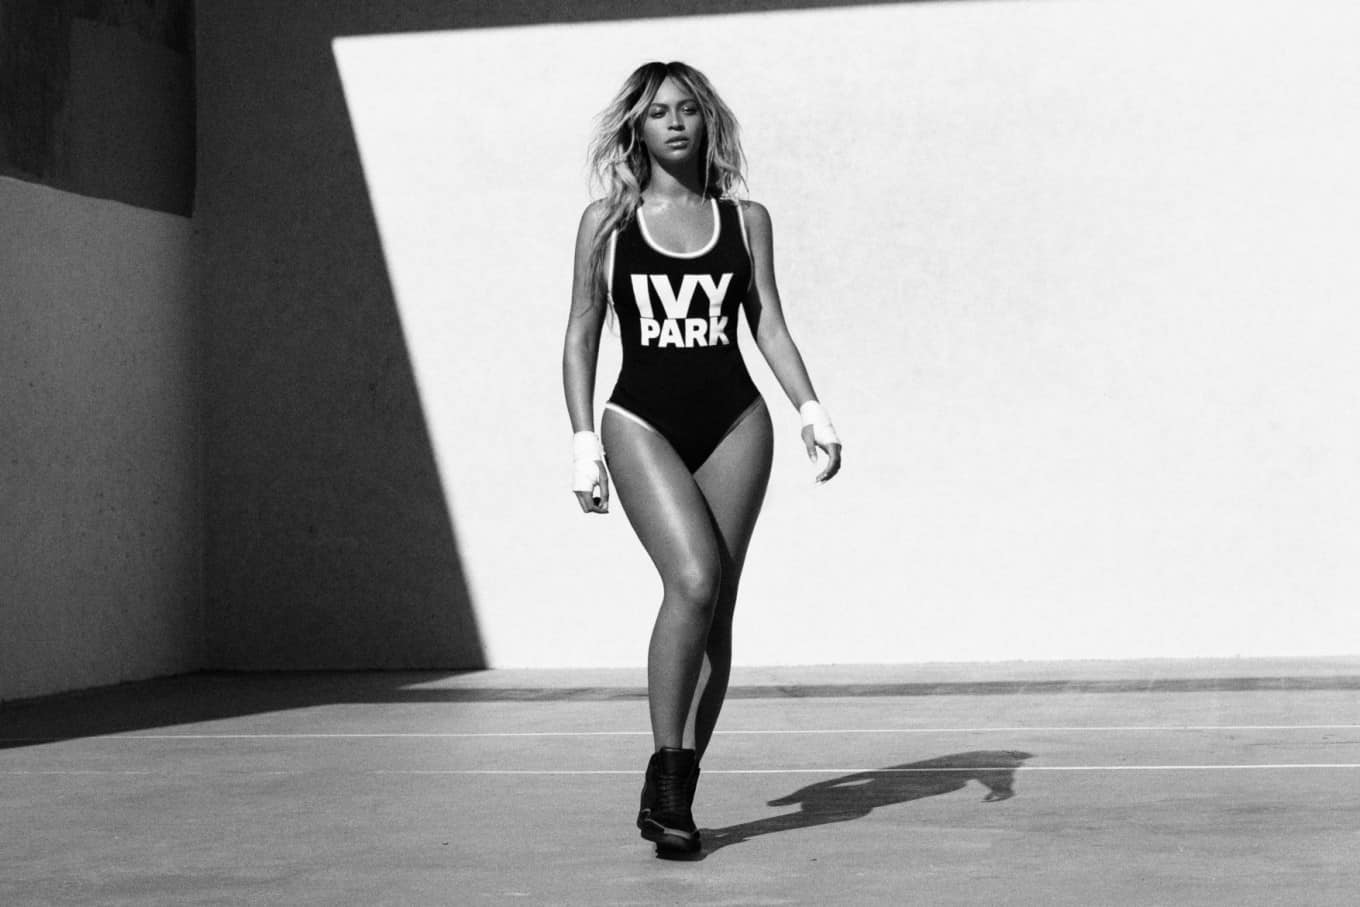 beyonce ivy park clothing